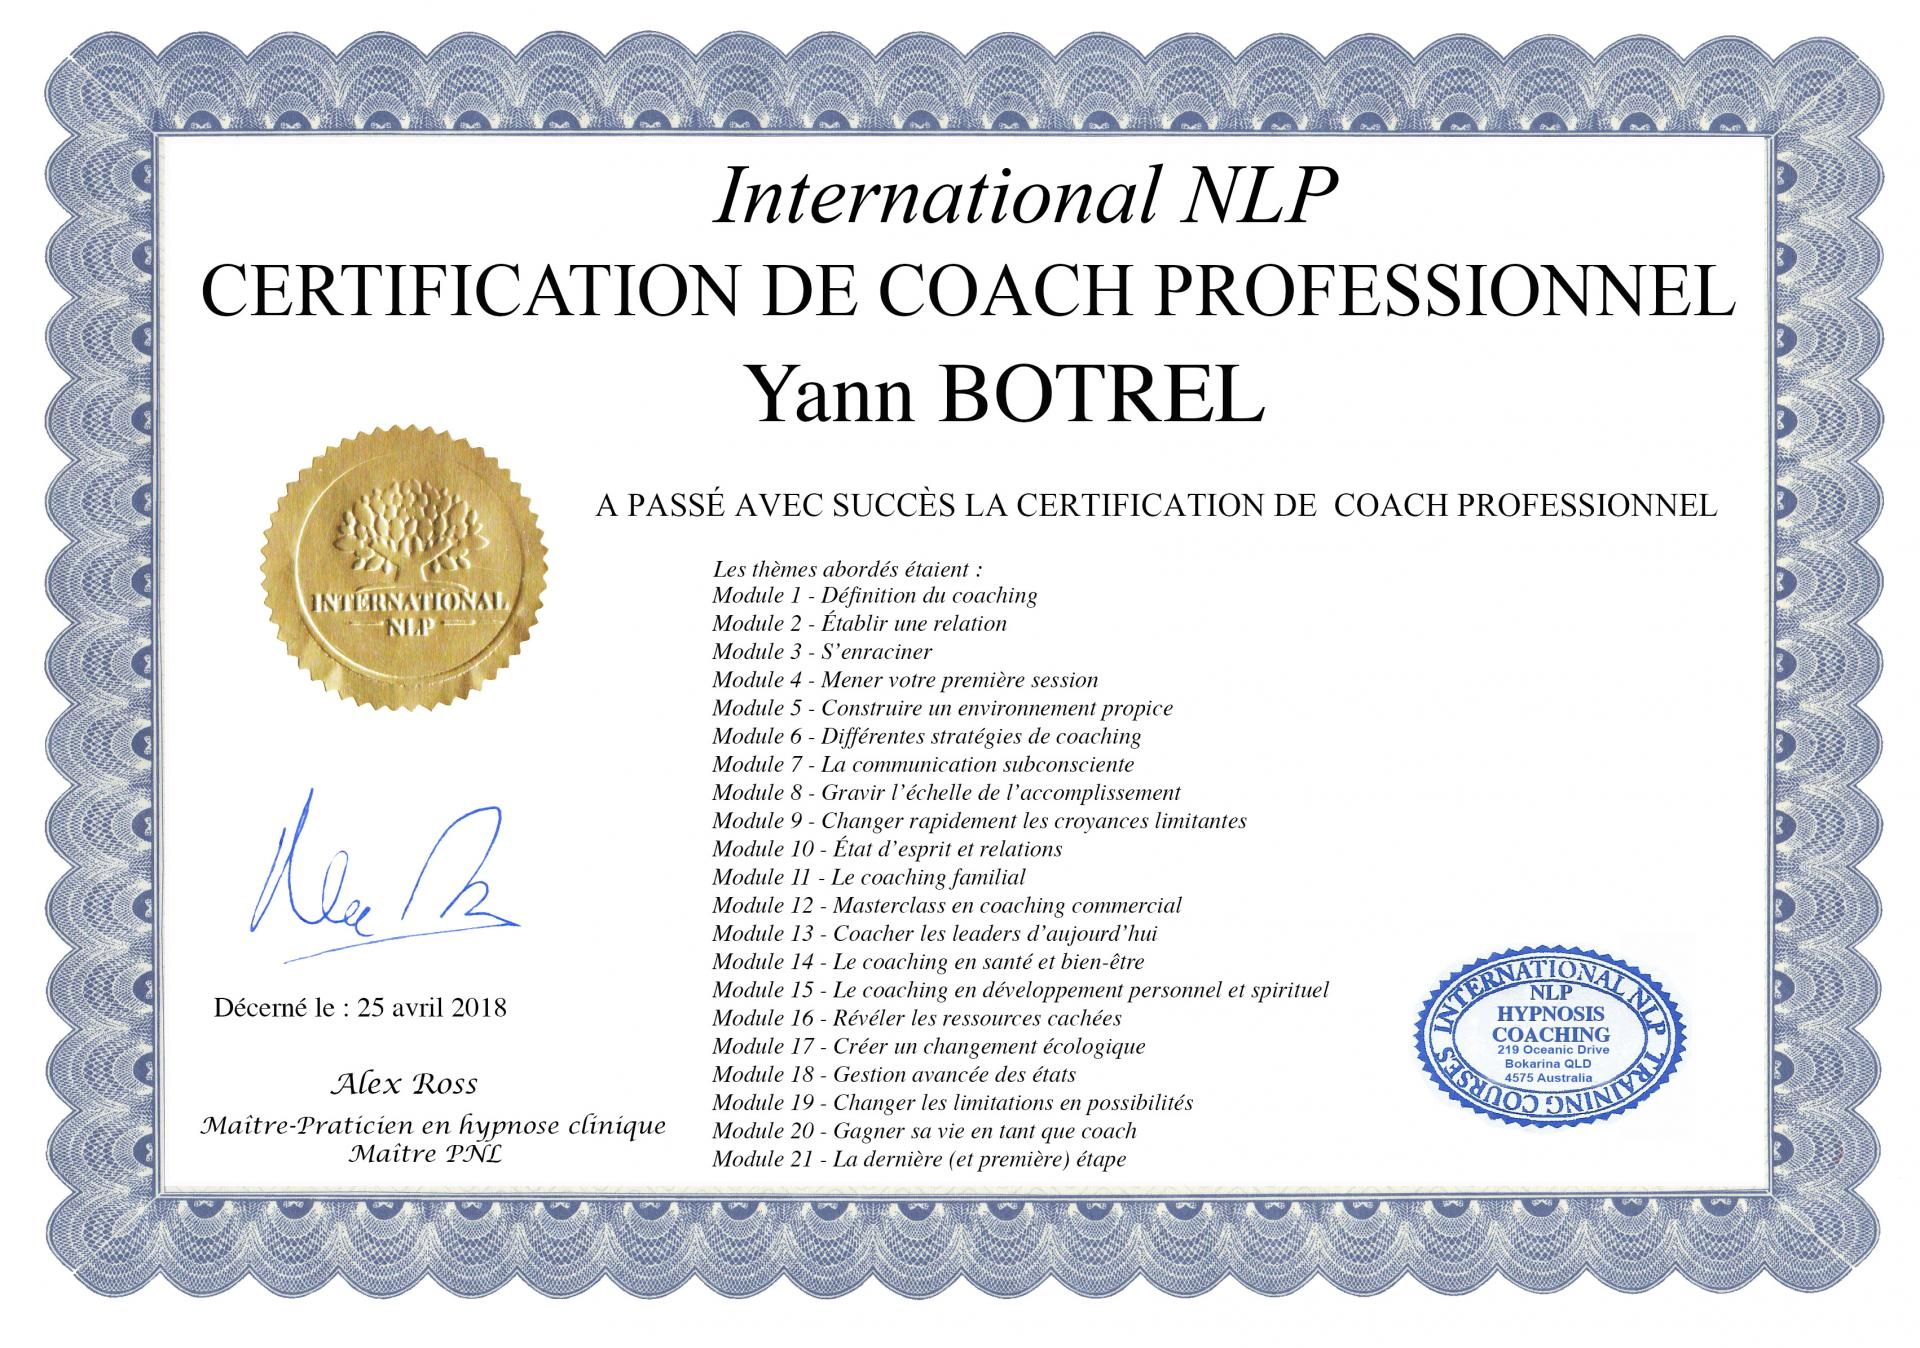 Certification de coaching professionnel